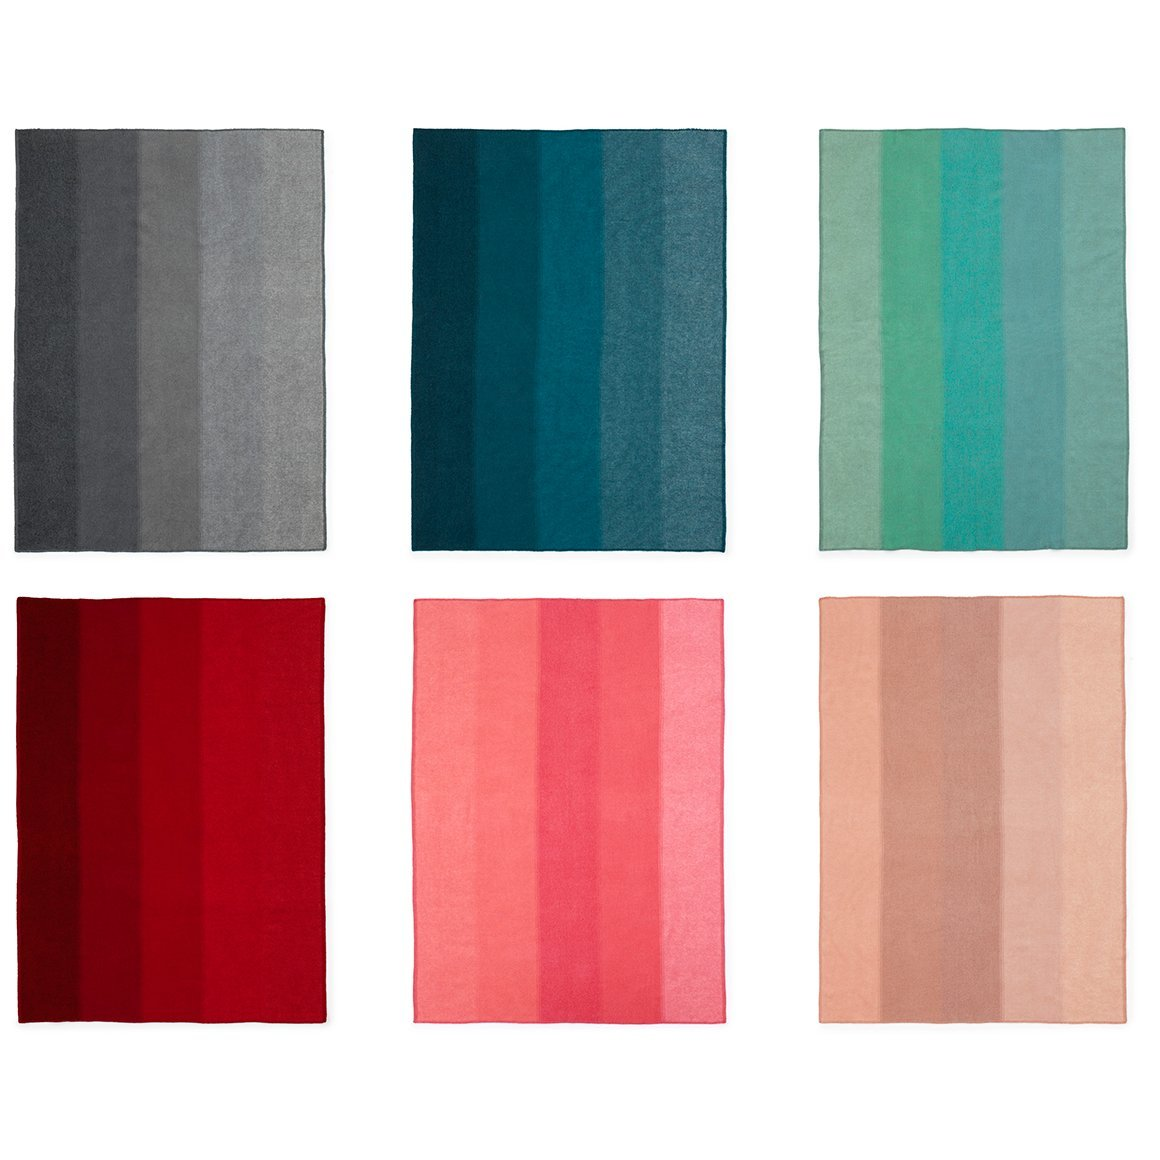 Normann Copenhagen Tint Throw - Eclectic Cool  - 3